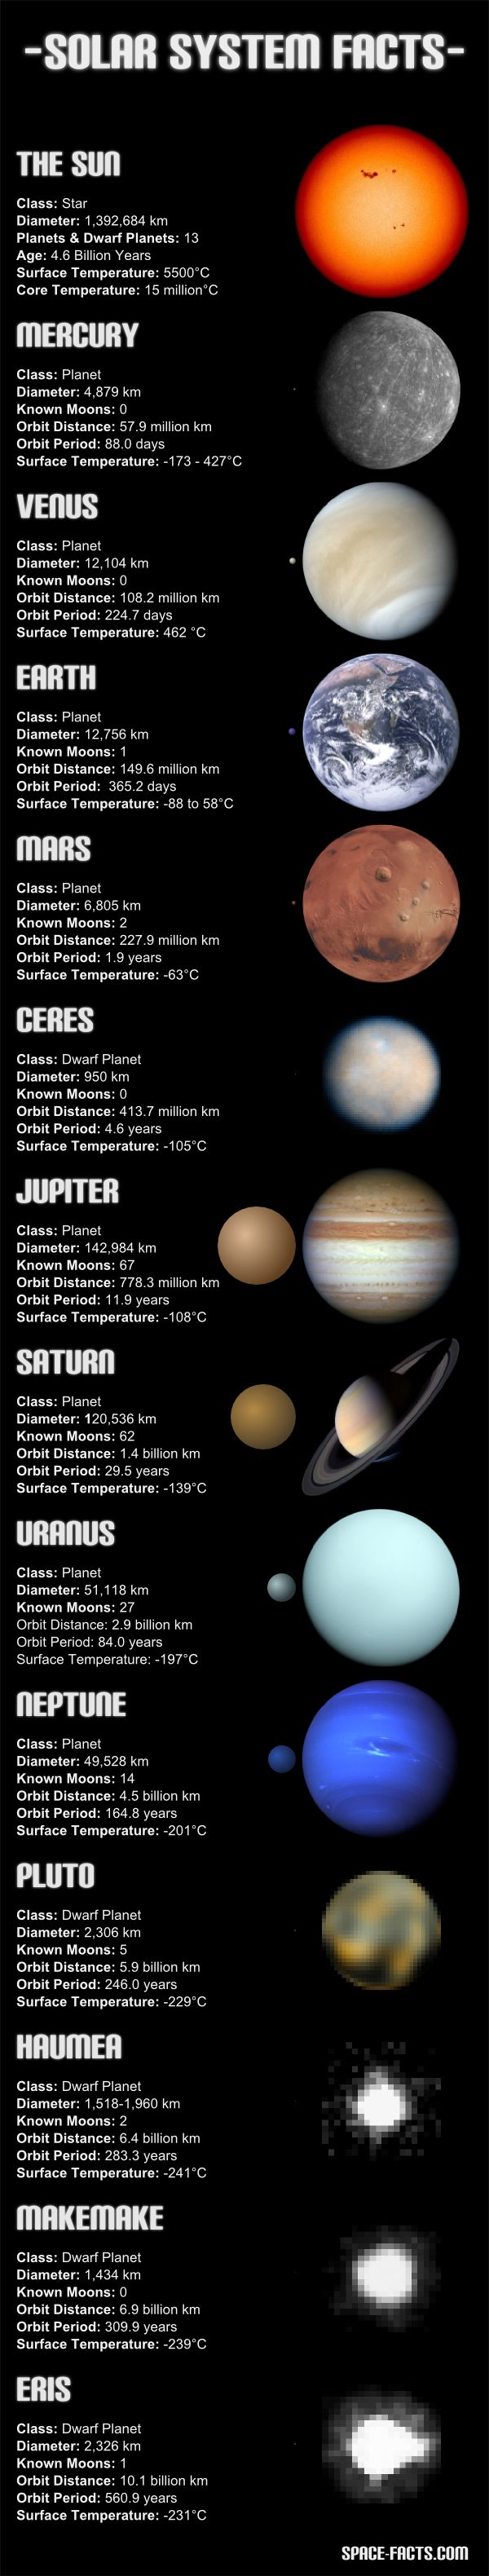 best ideas about solar system information solar information on the sun planets and dwarf planets in the solar system surface temperature